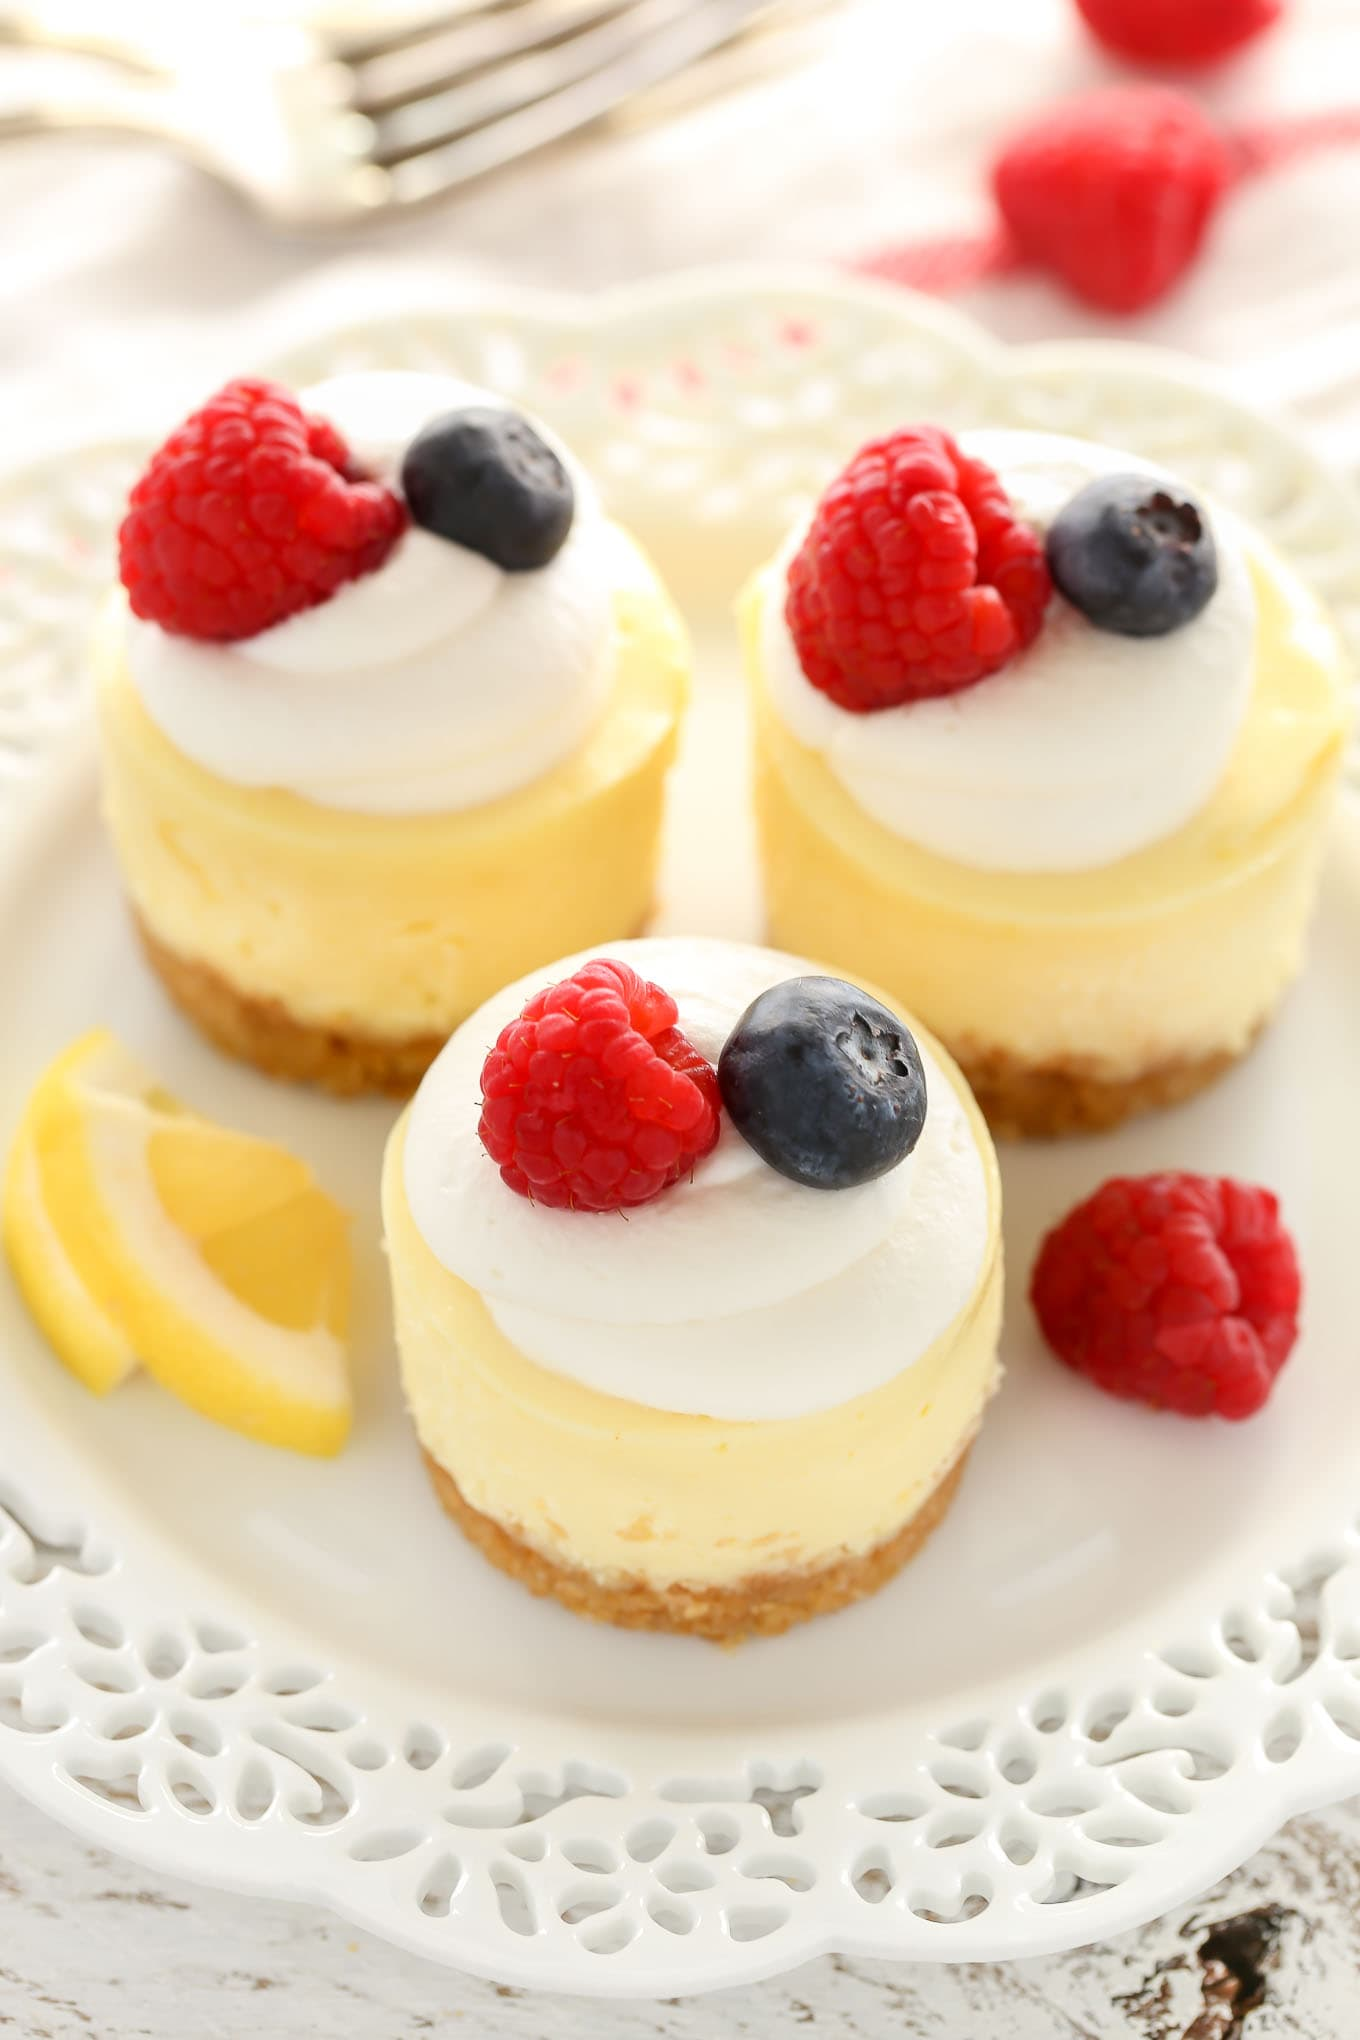 Smooth And Creamy Cheesecake With Sour Cream Topping Recipe